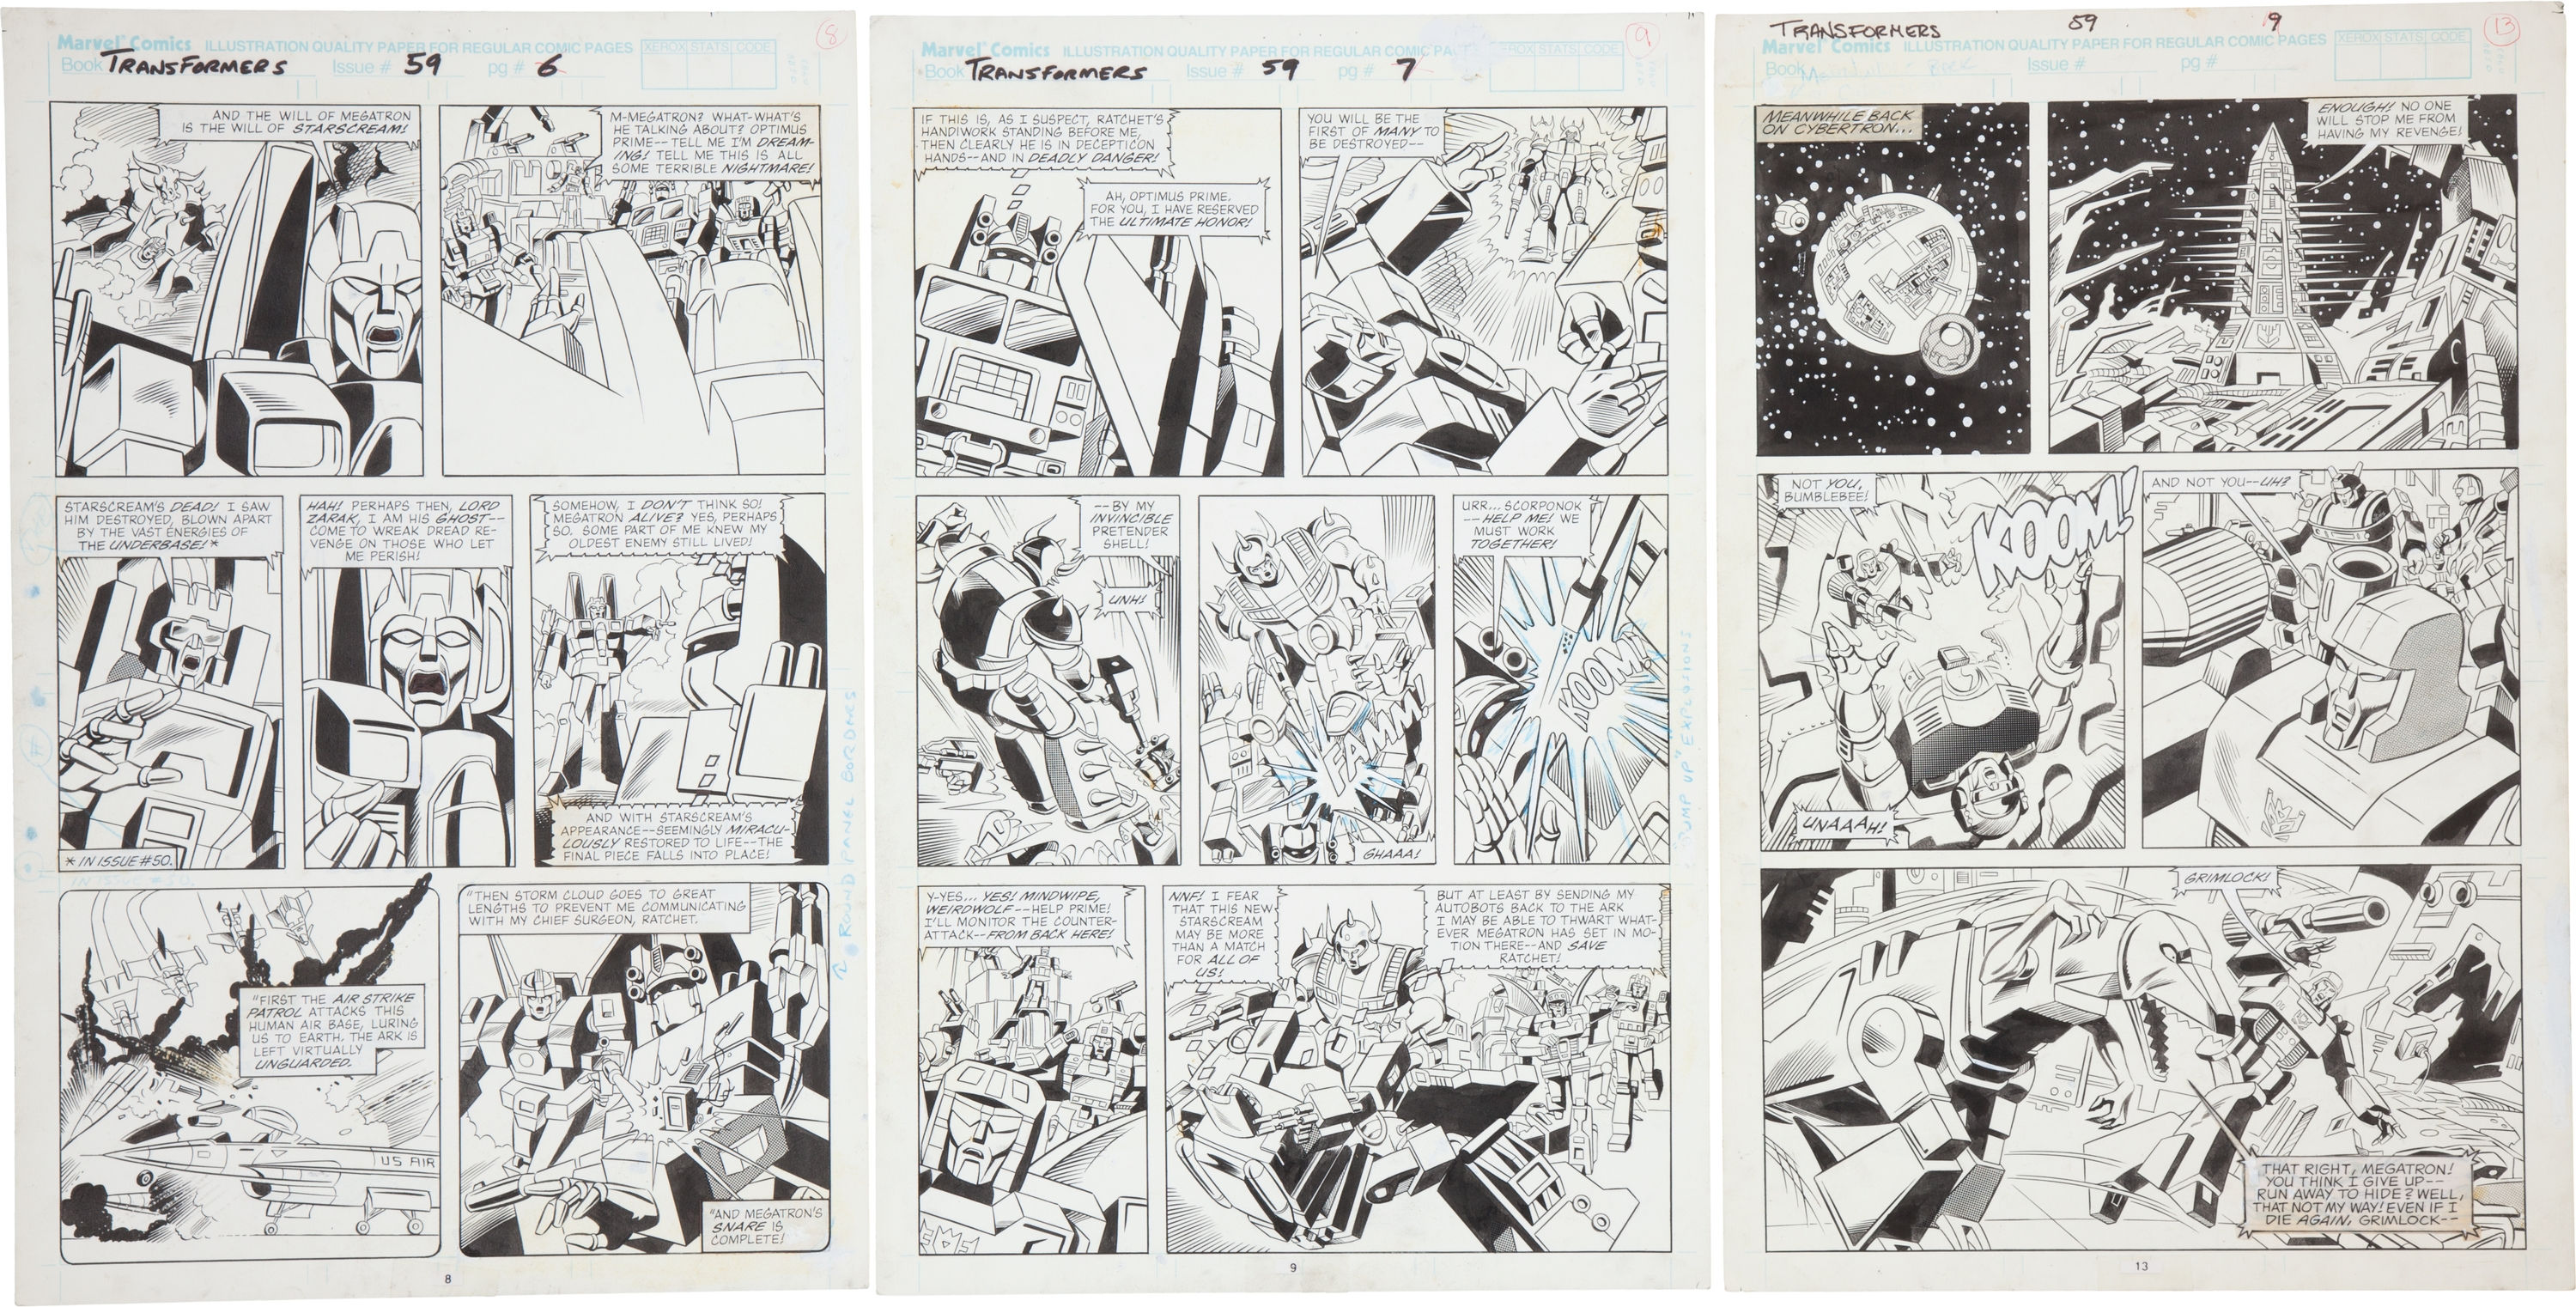 Be Nelson Yomtov! (Colorists, Tackle an Original Transformers Marvel Comics Page!)-jose-delbo-transformers-59-pages-02.jpg